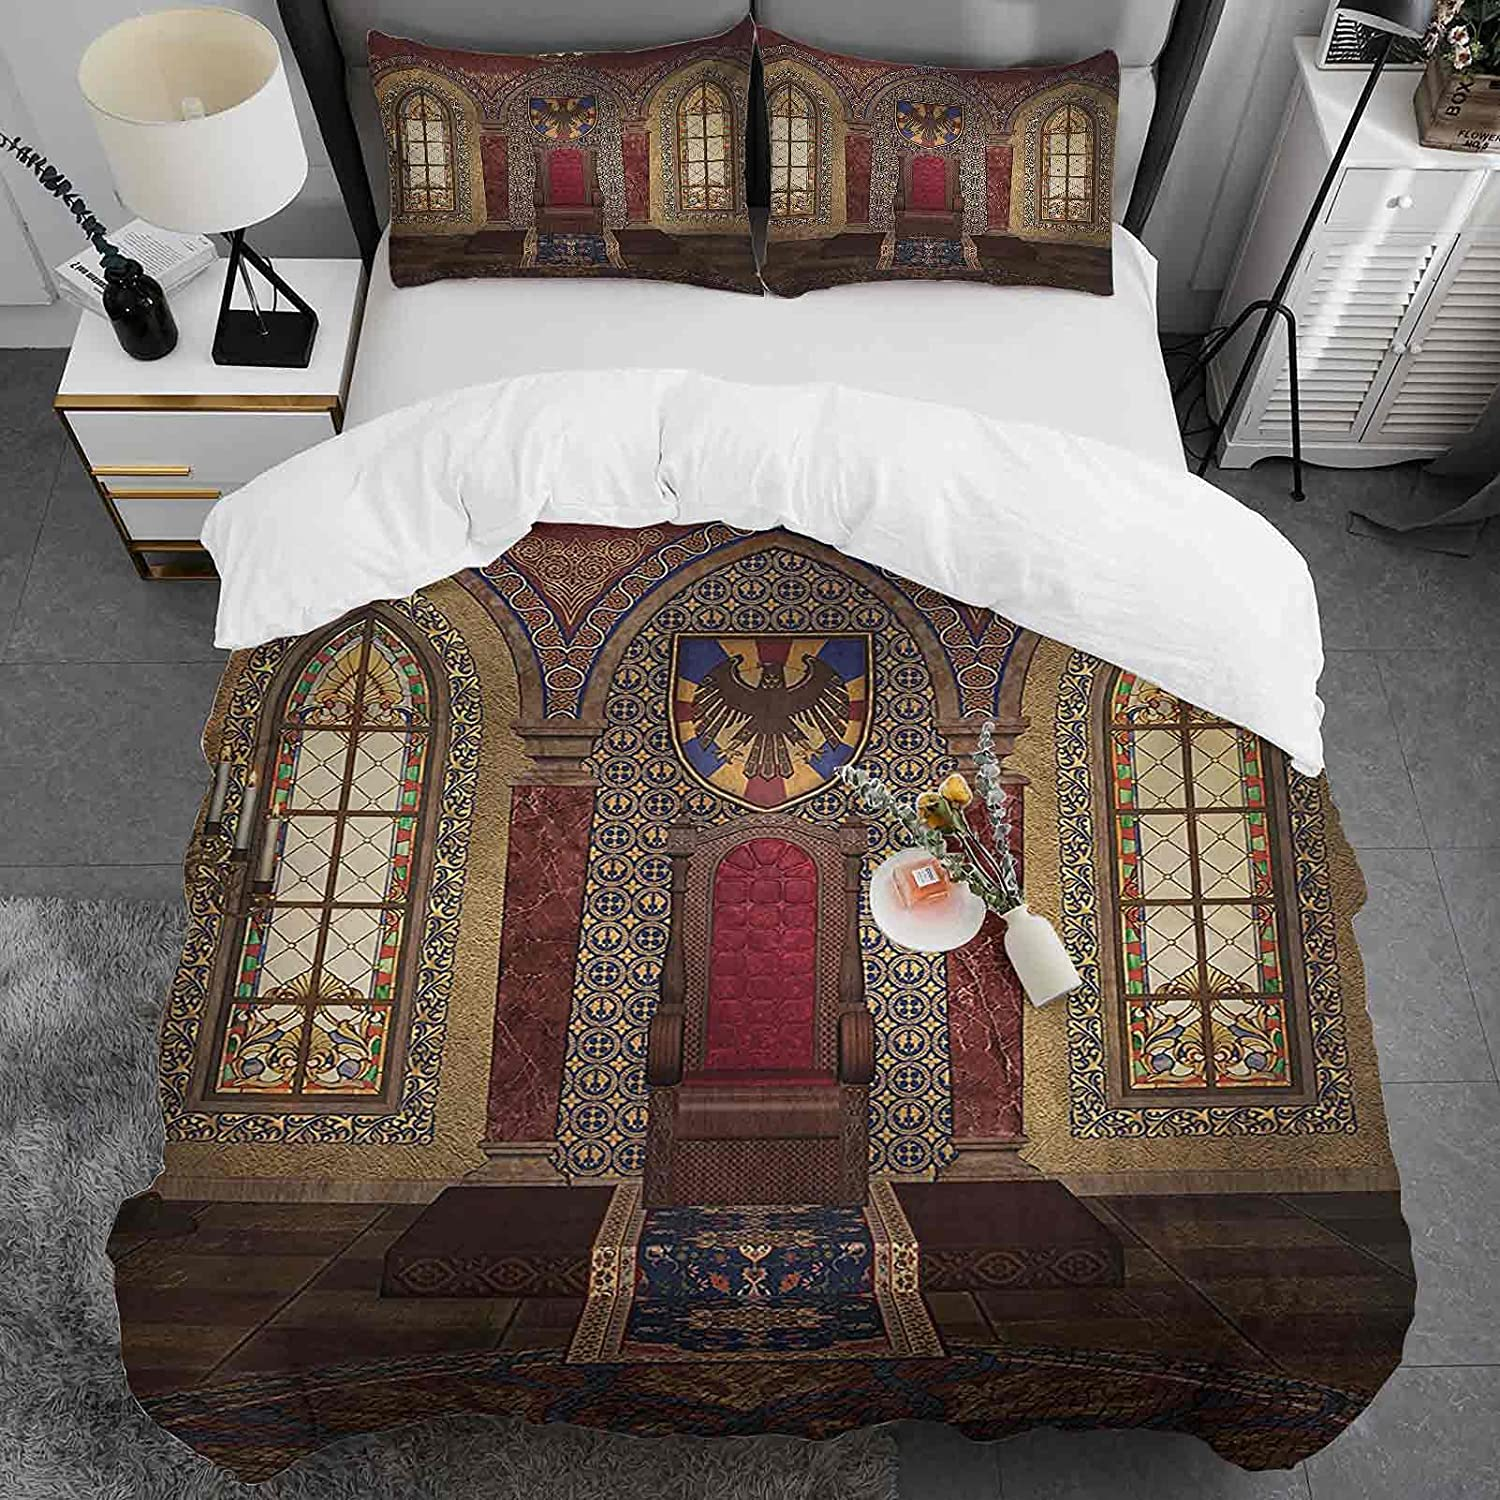 Gothic Duvet Cover Twin Size Red Chapel Outlet ☆ Free Shipping in Topics on TV Medieval Eagl Throne